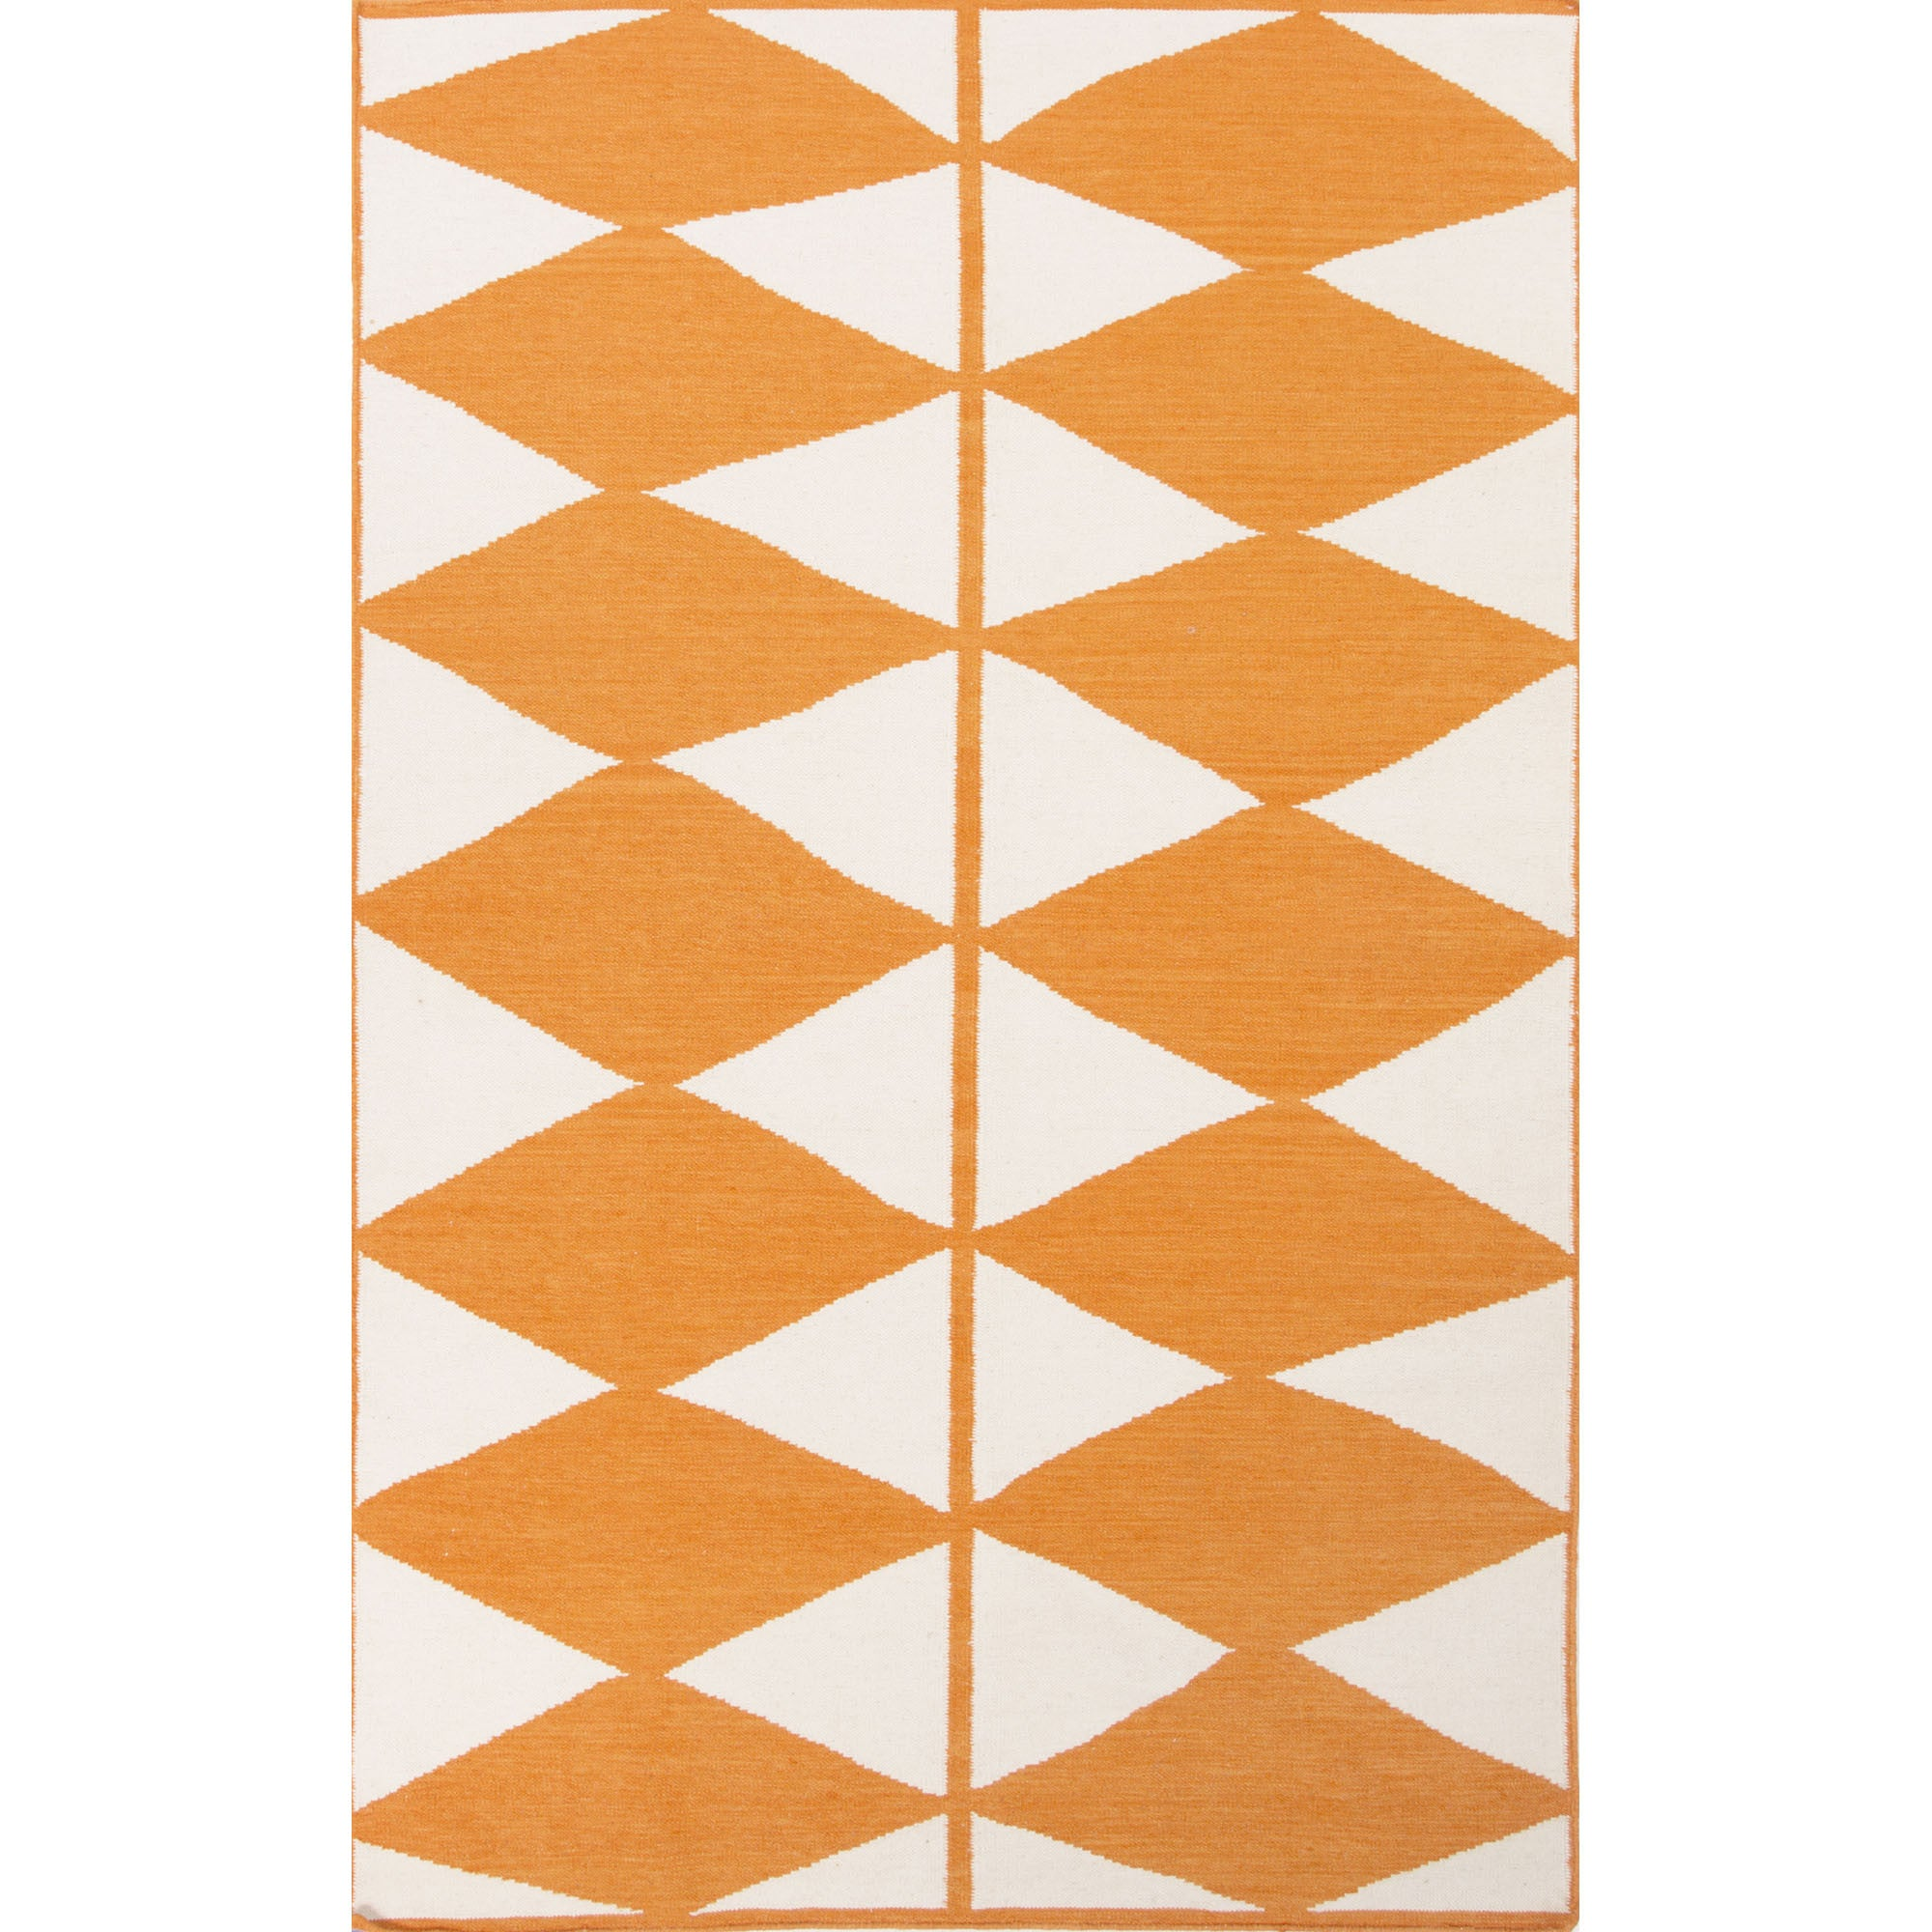 Jaipur Rugs FlatWeave Geometric Pattern Orange/Ivory Wool Area Rug LSF u2013 RugMethod